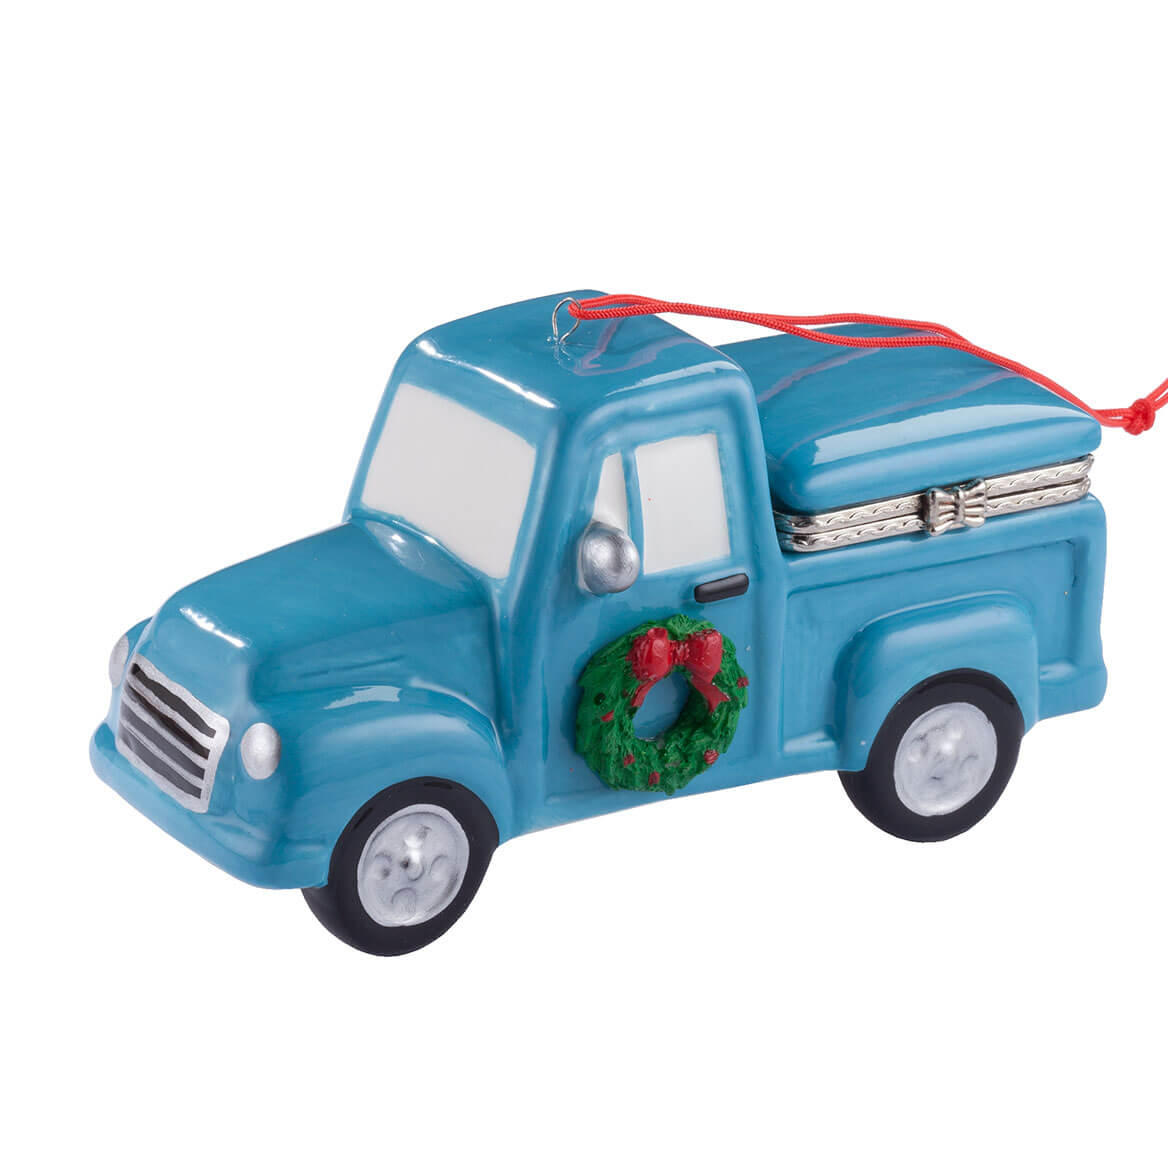 Vintage Truck with Tree Trinket Box